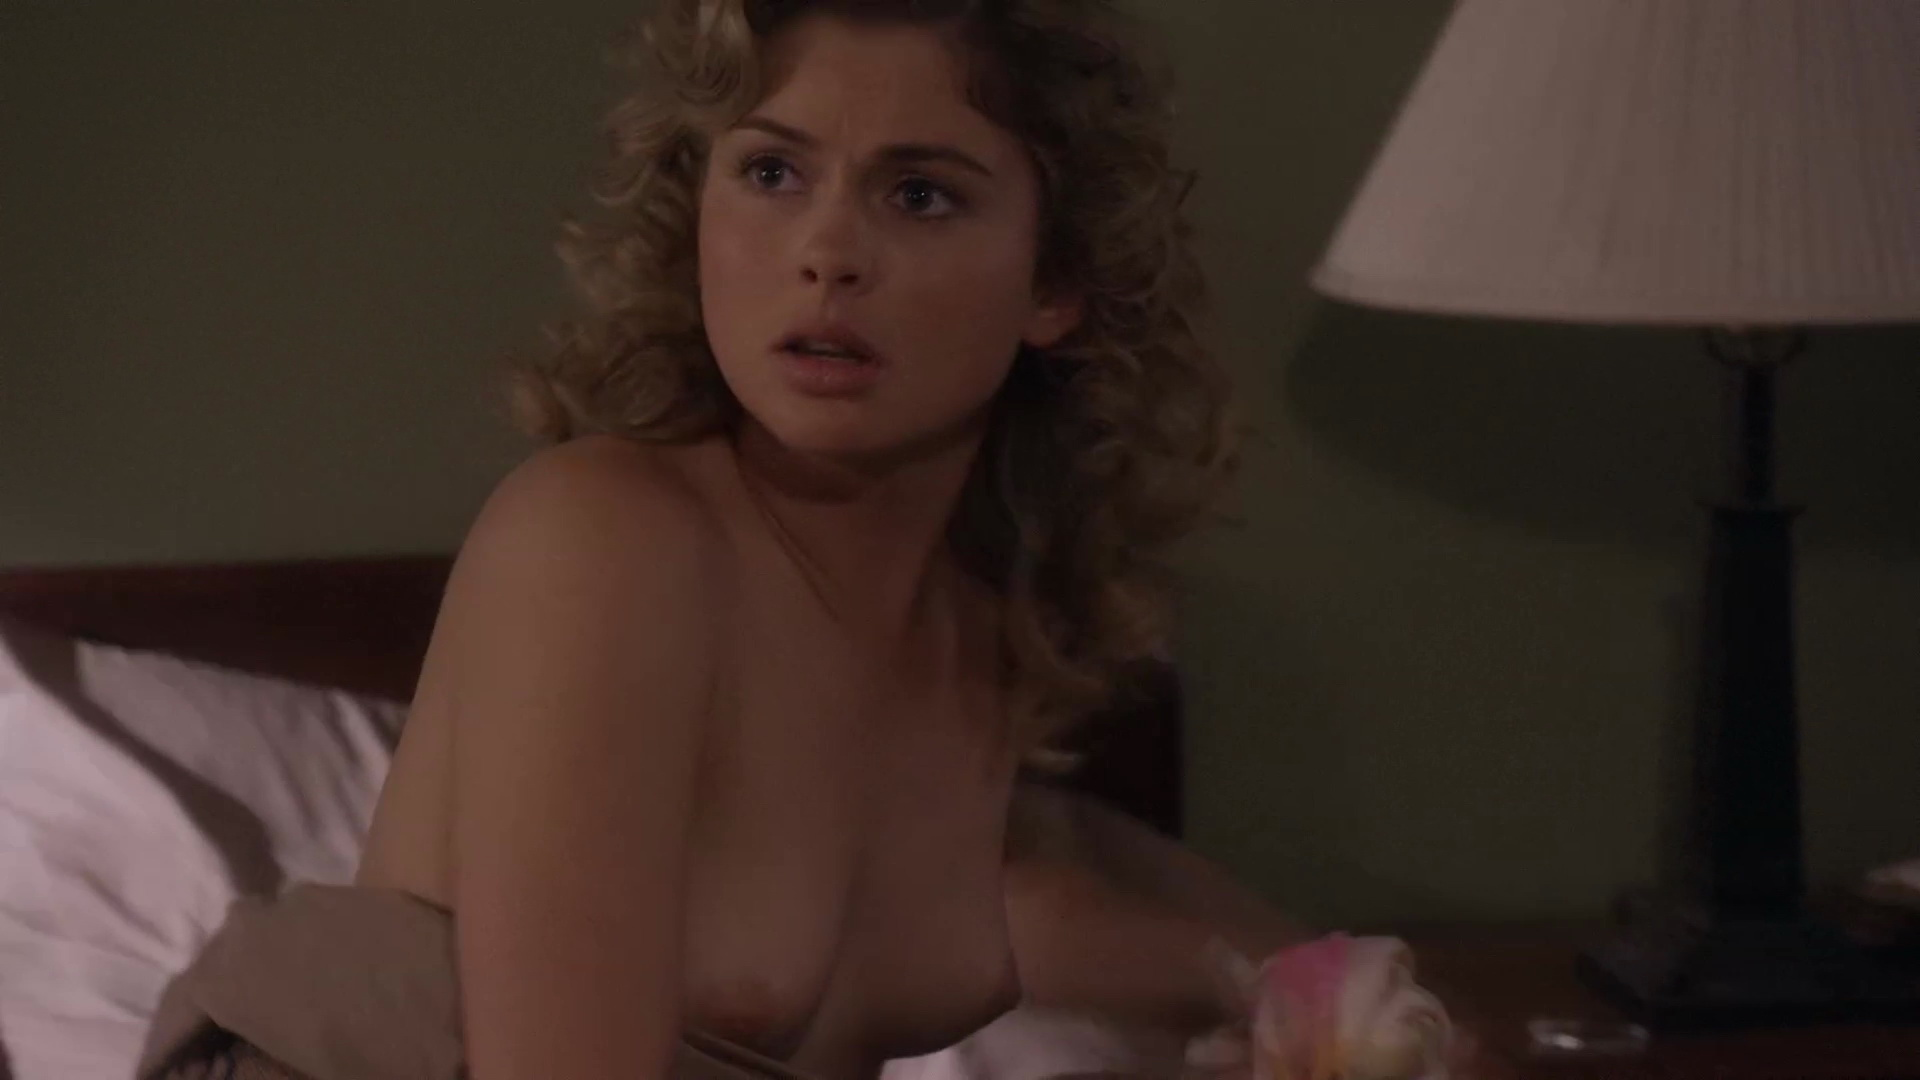 Masters sex mciver nude of rose